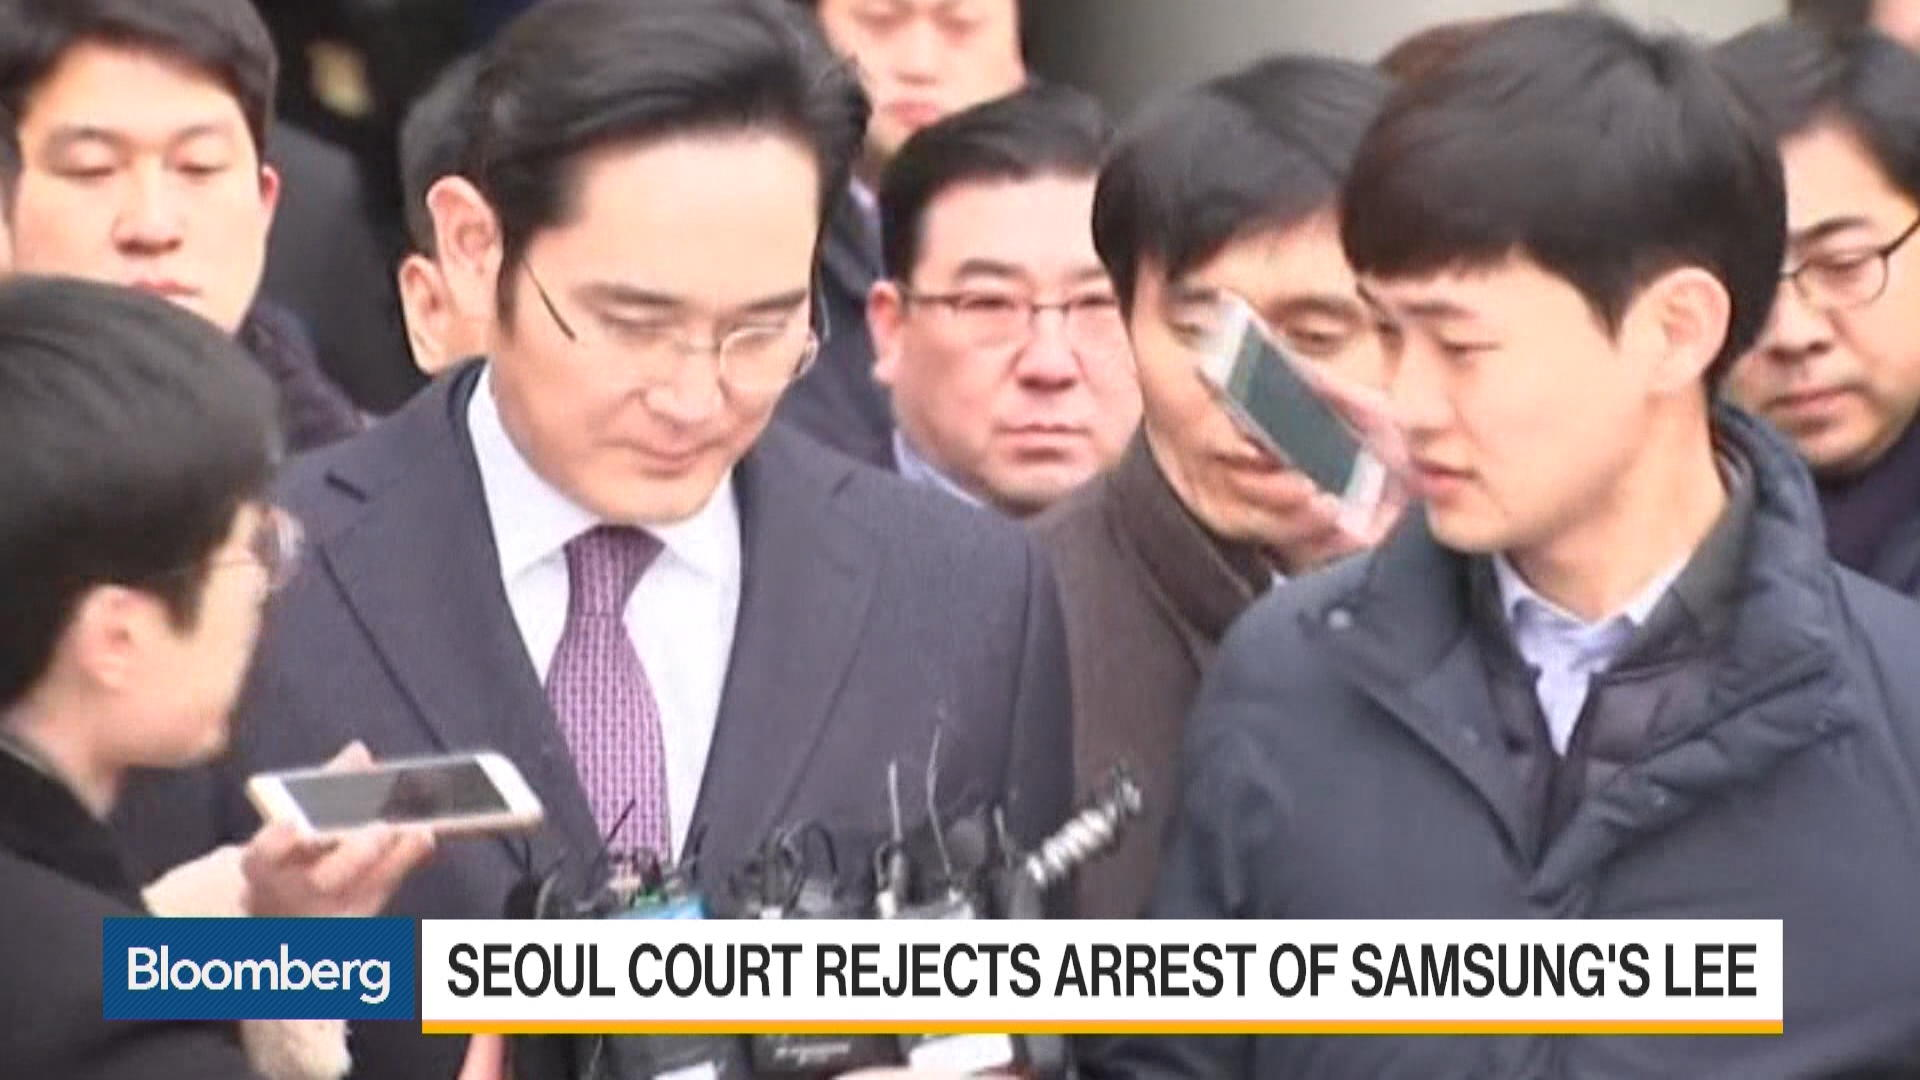 Seoul Court Rejects Arrest of Samsung Heir Lee